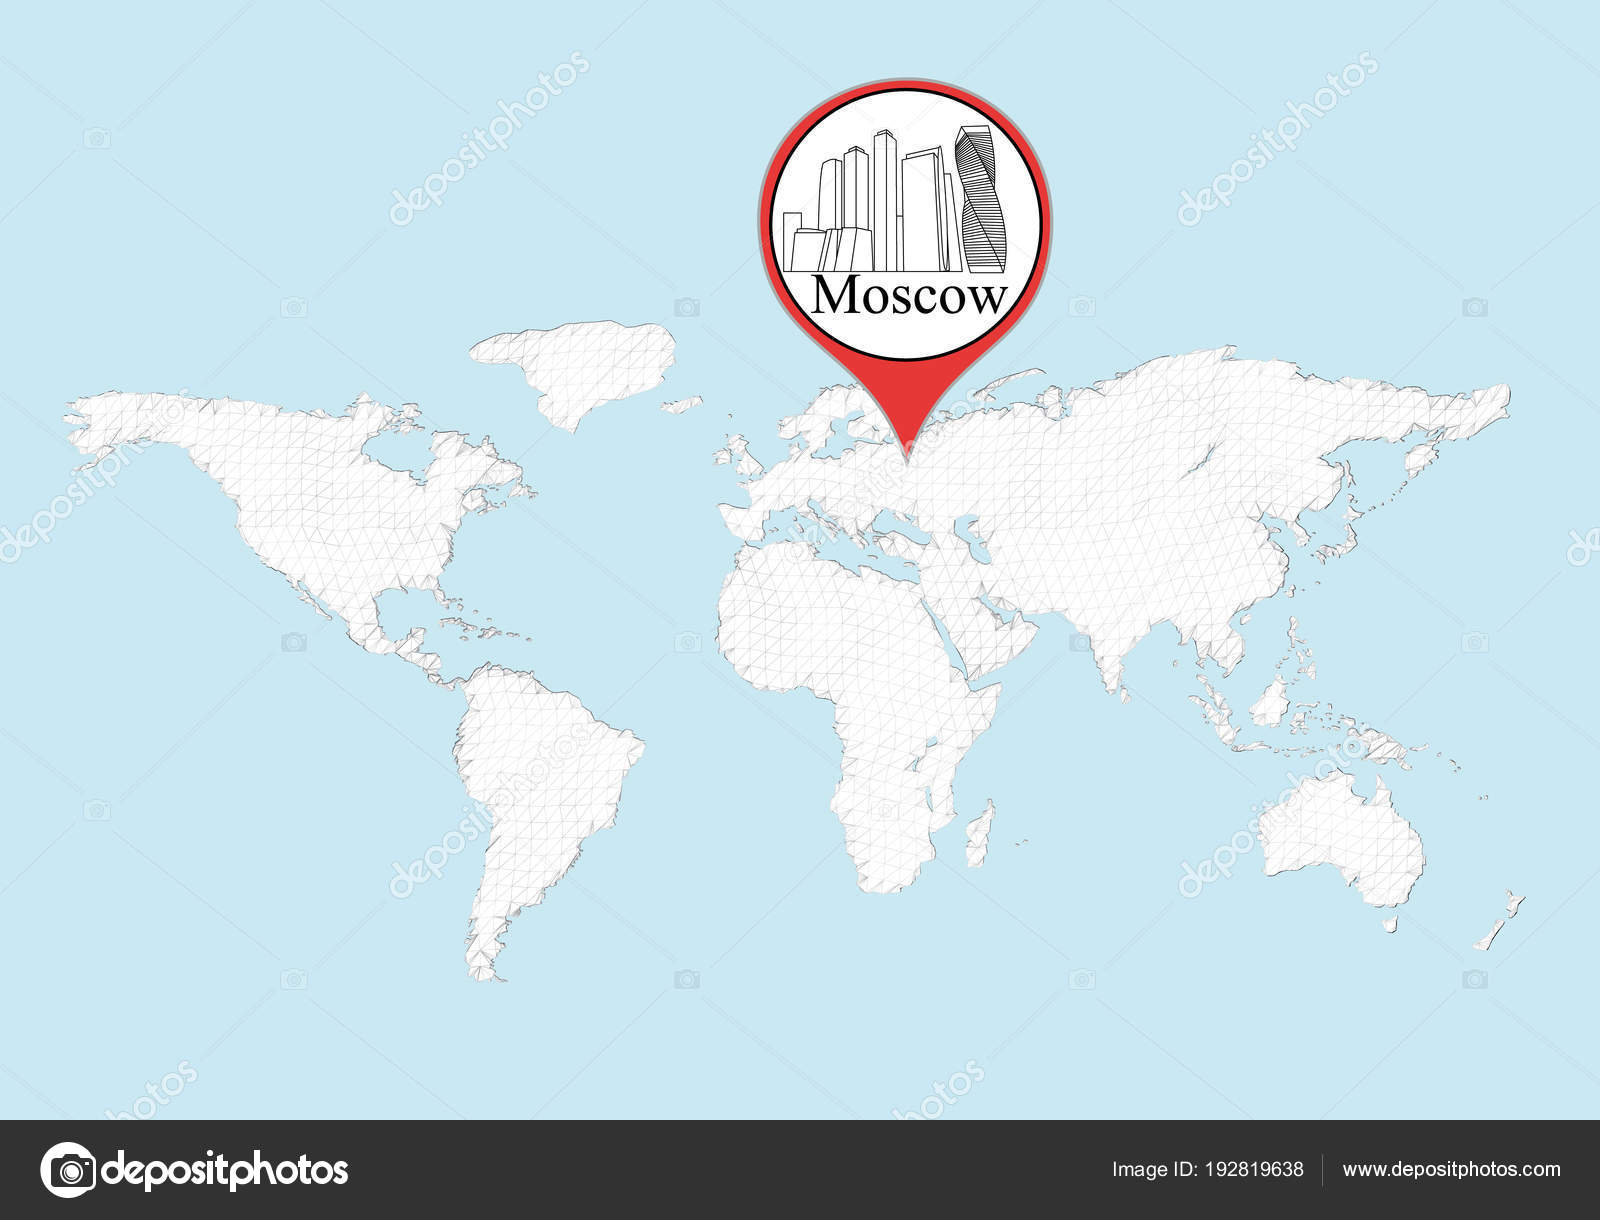 Moscow On The World Map Stock Vector C Slim3d1 192819638